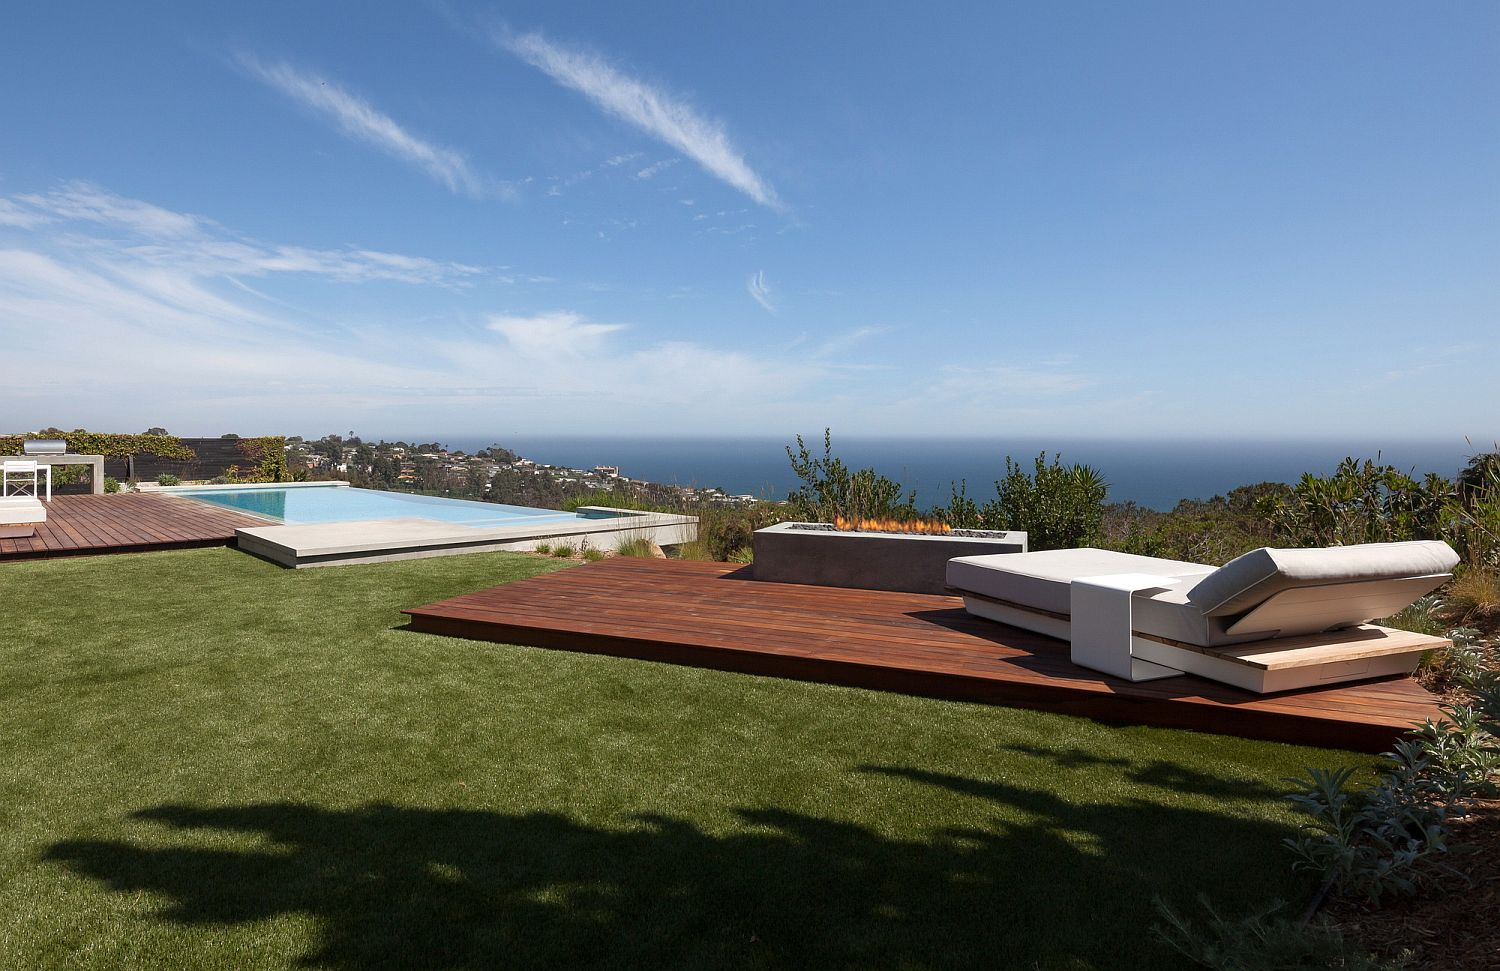 Outdoor hangout with firepit, wooden deck, infinity pool and awesome Pacific Ocean views